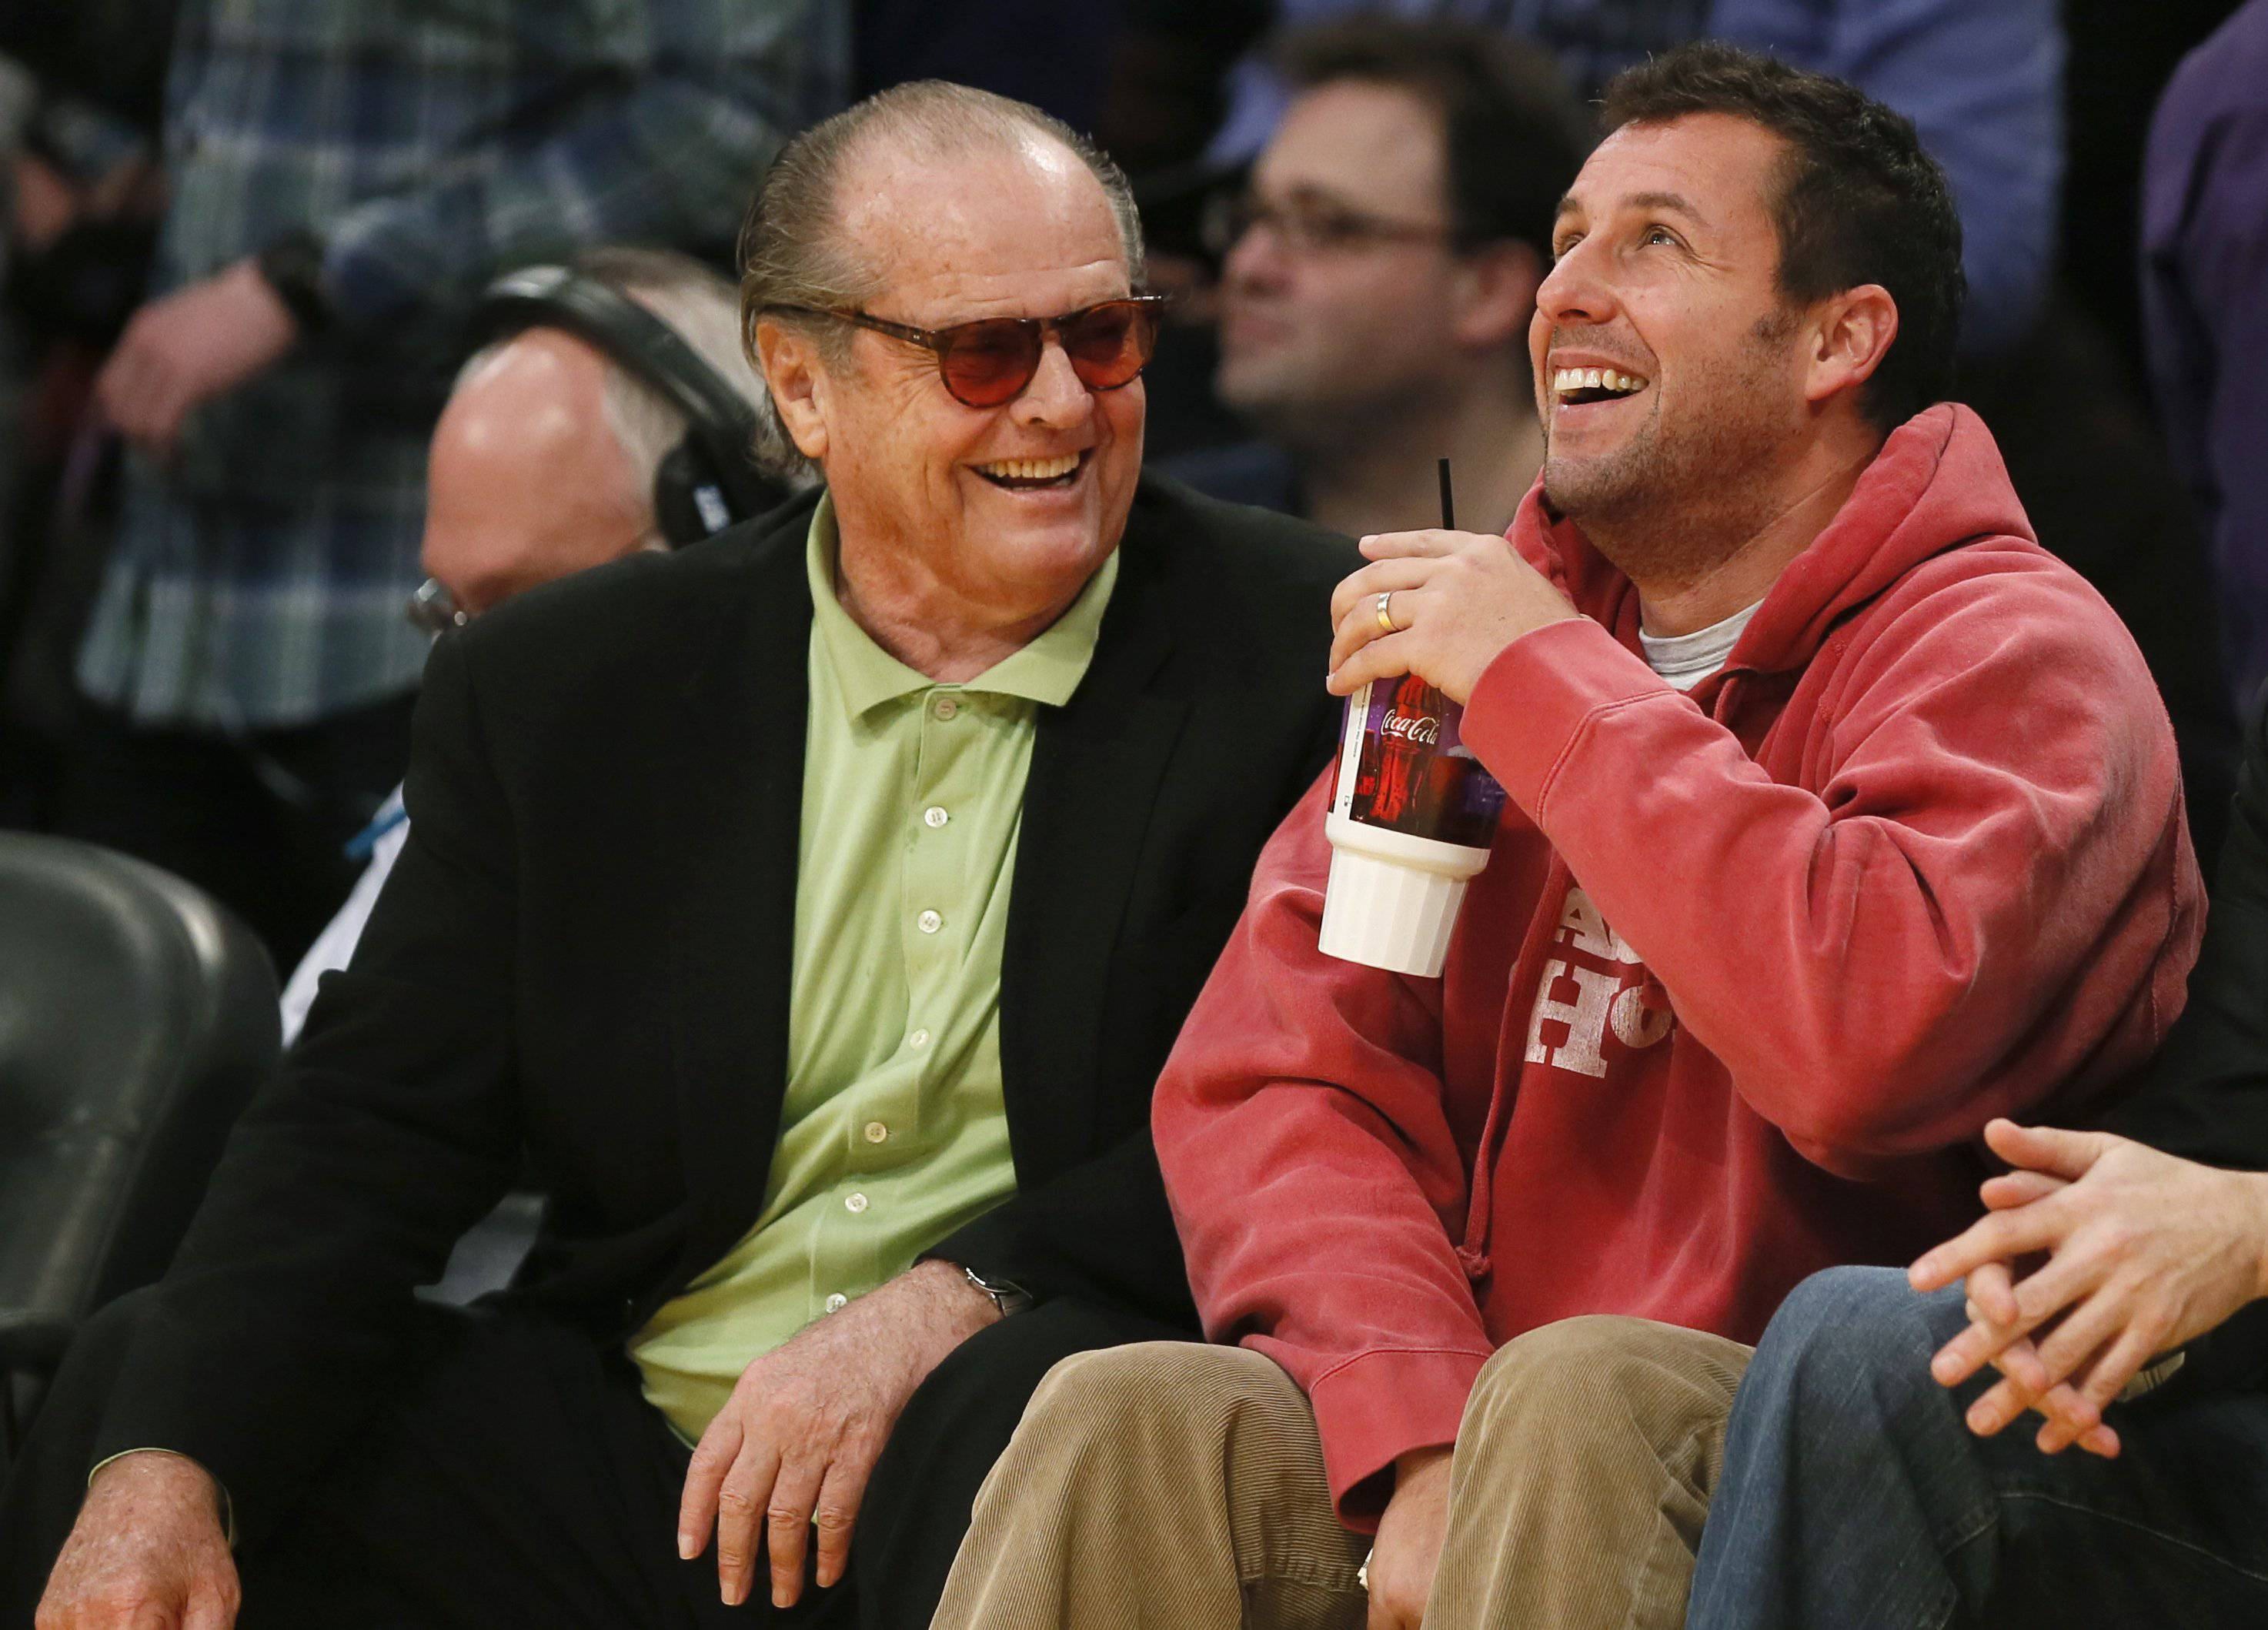 Anger Management Jack Nicholson Adam Sandler Leave The Lakers Game Early During 4th Quarter Blowout Ballislife Com